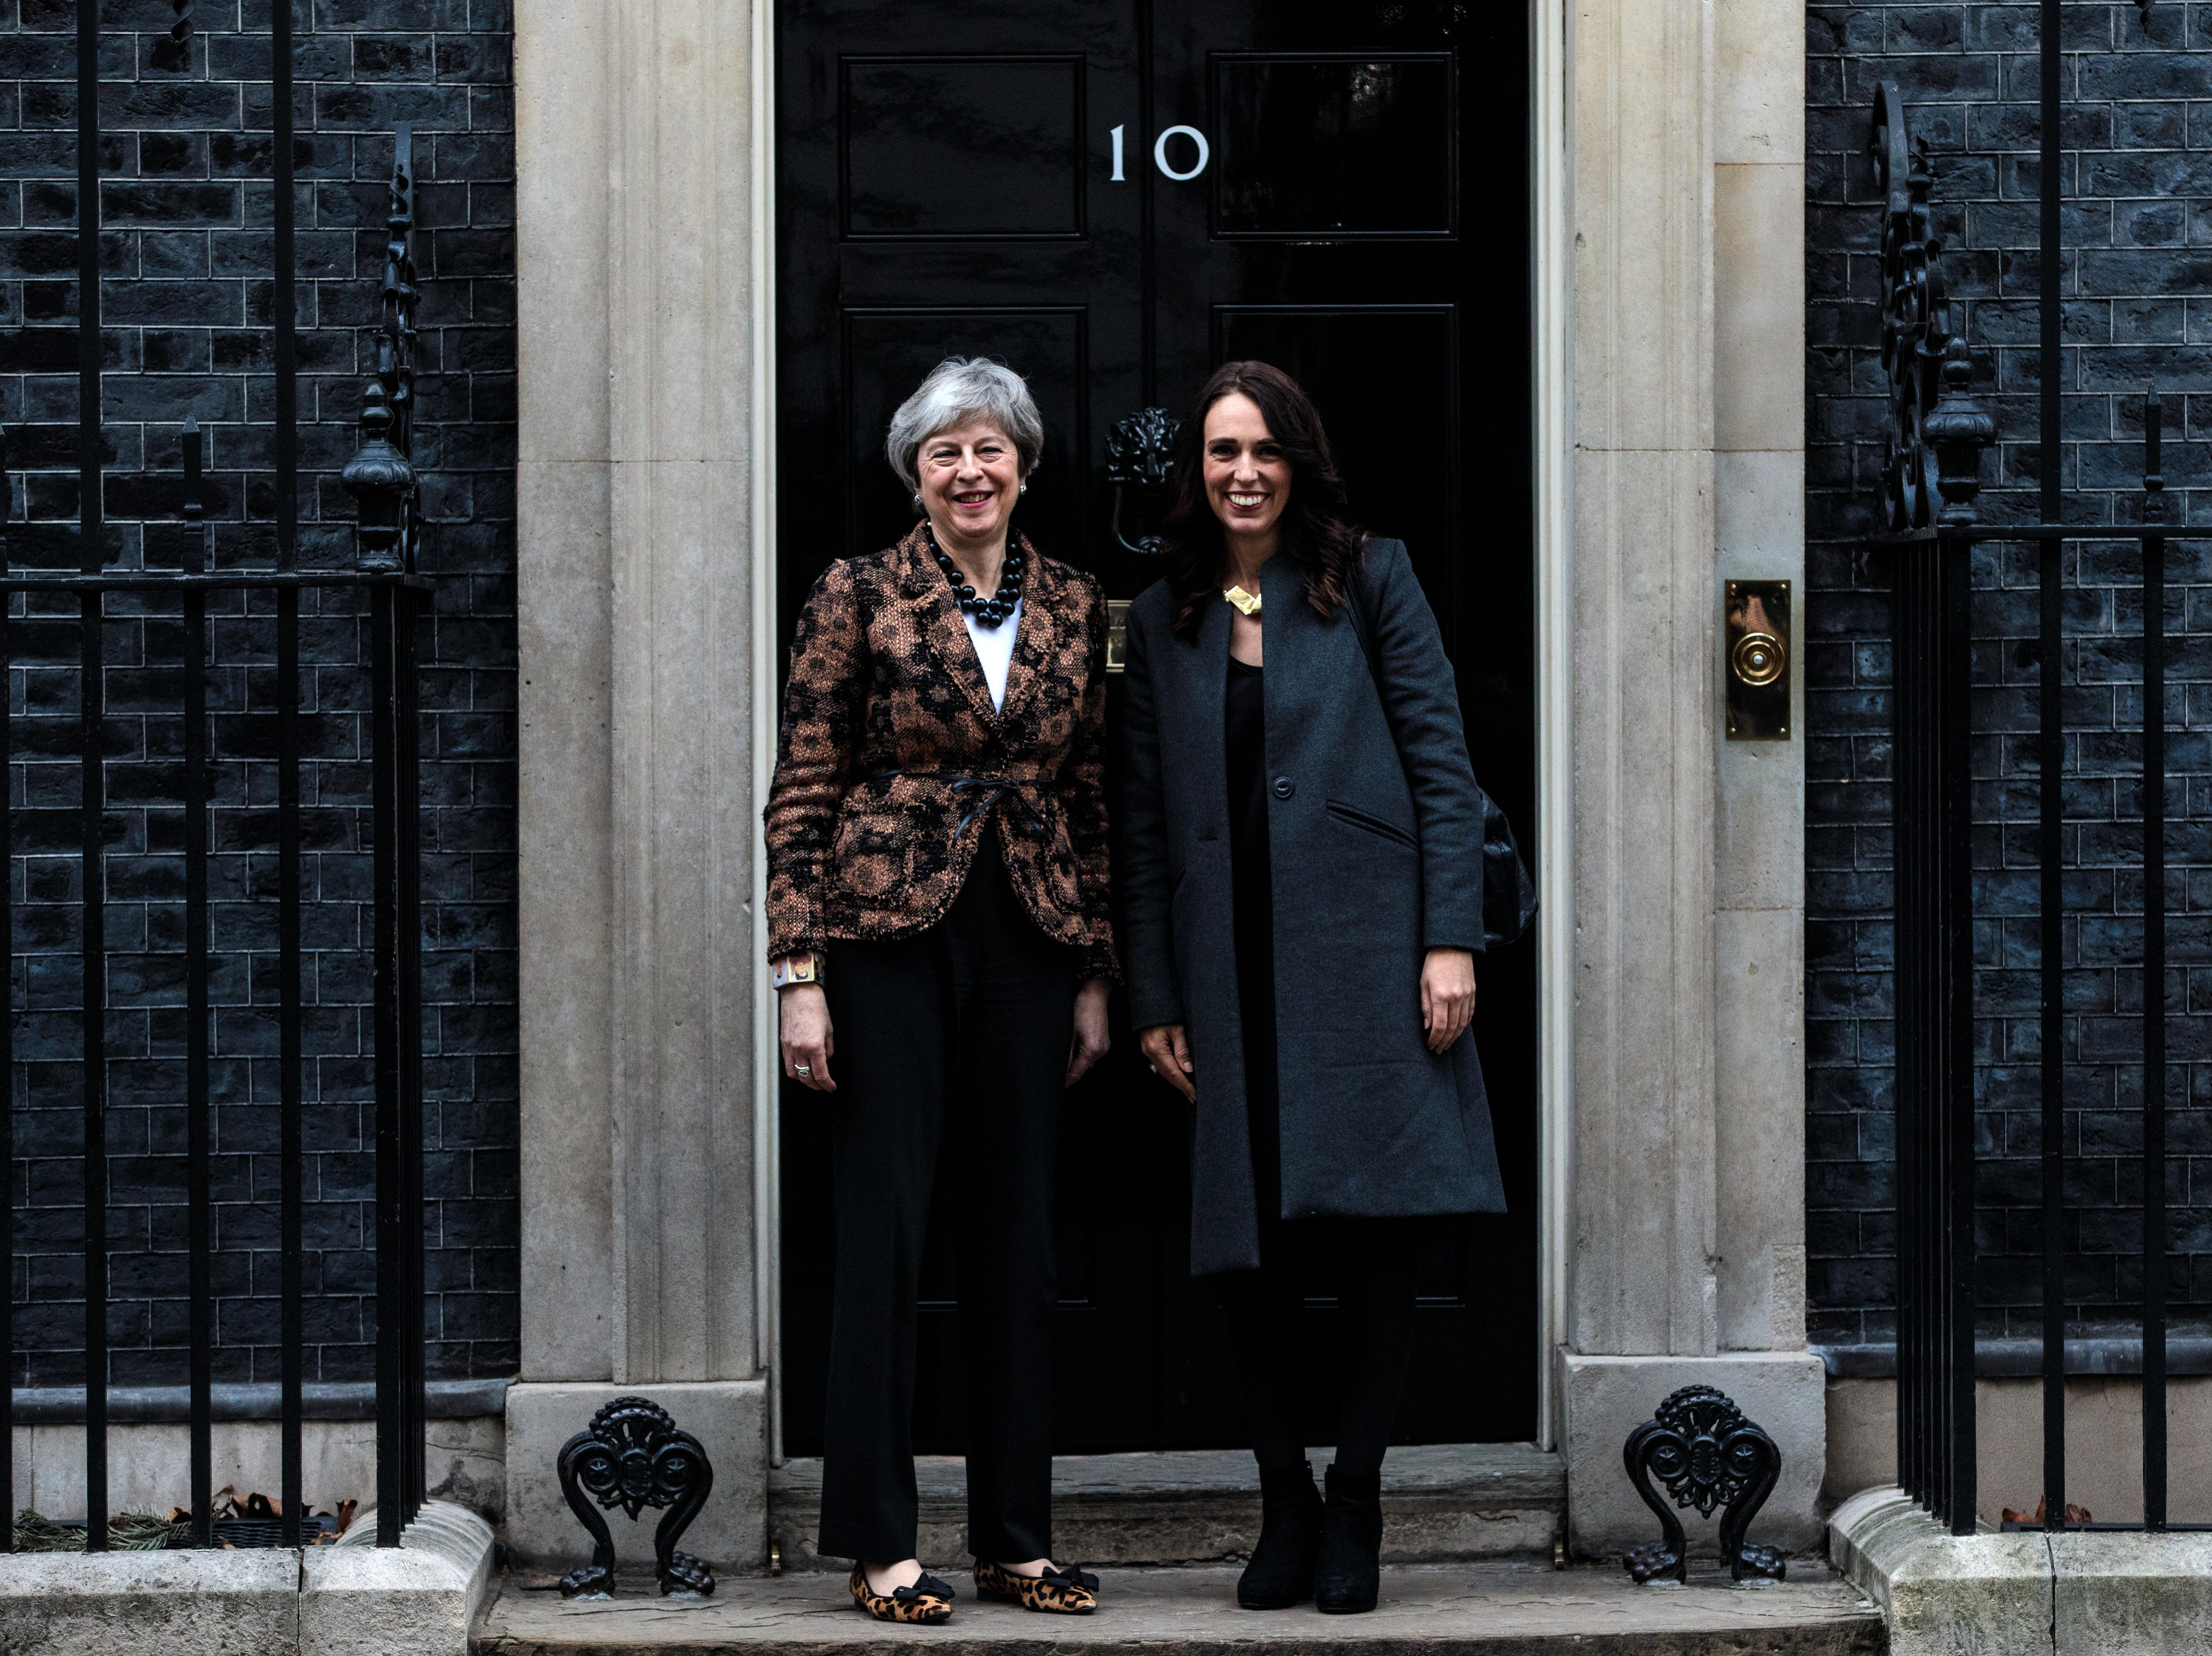 Theresa May greets Prime Minister of New Zealand Jacinda Ardern outside Number 10 Downing Street on Jan. 21, 2019 in London, England. Britain is one of New Zealand's largest bilateral trading partners and Ardern says she is concerned about Britain potentially leaving the EU without a deal.